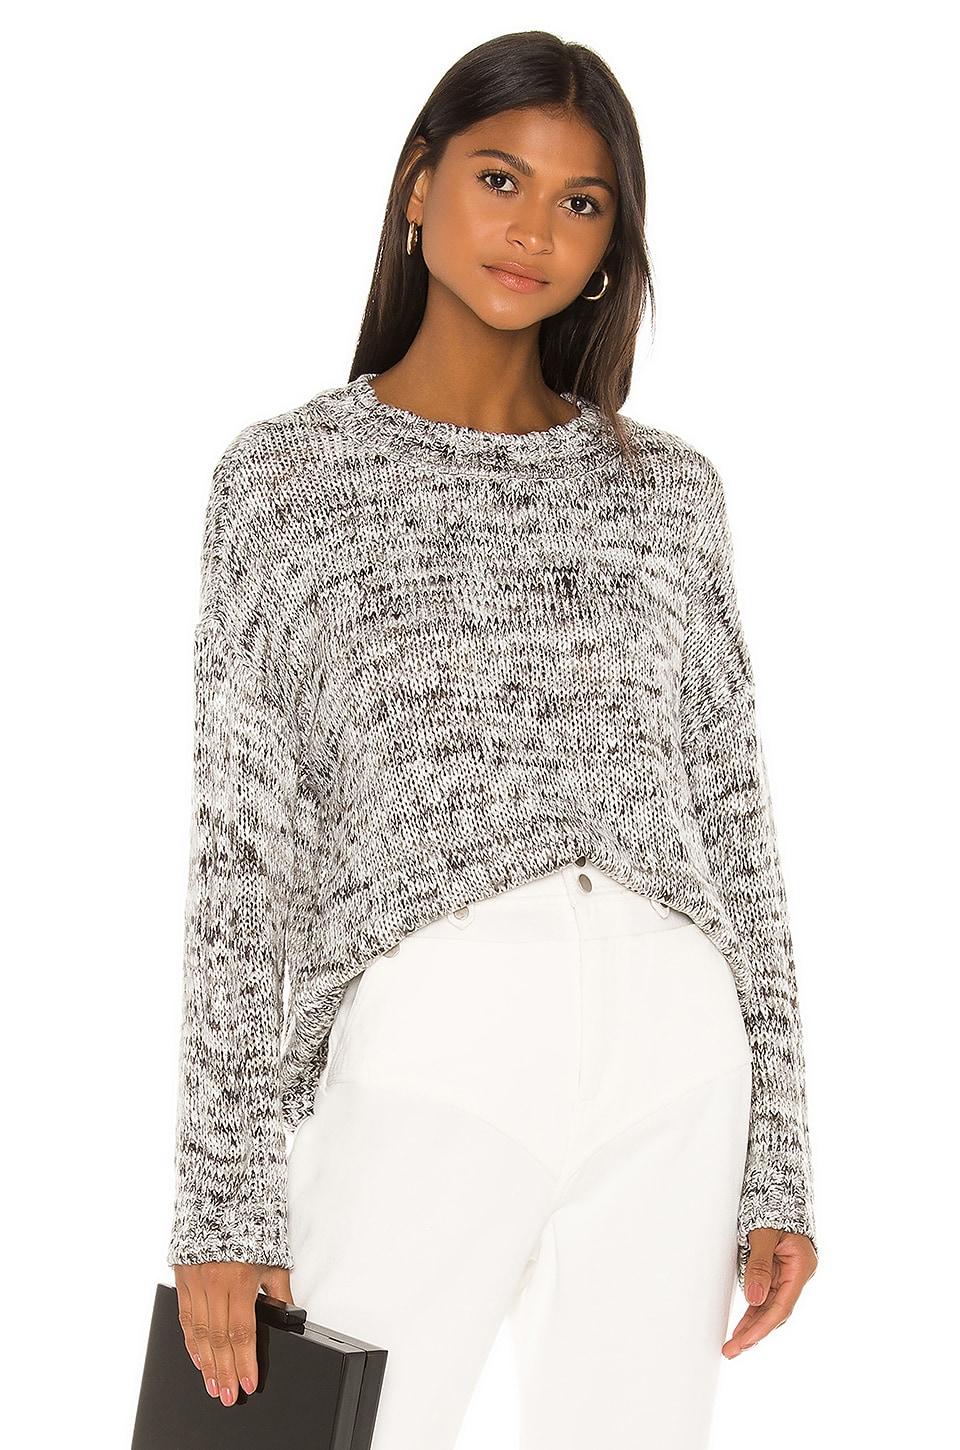 L'Academie Angus Oversized Sweater in Granite